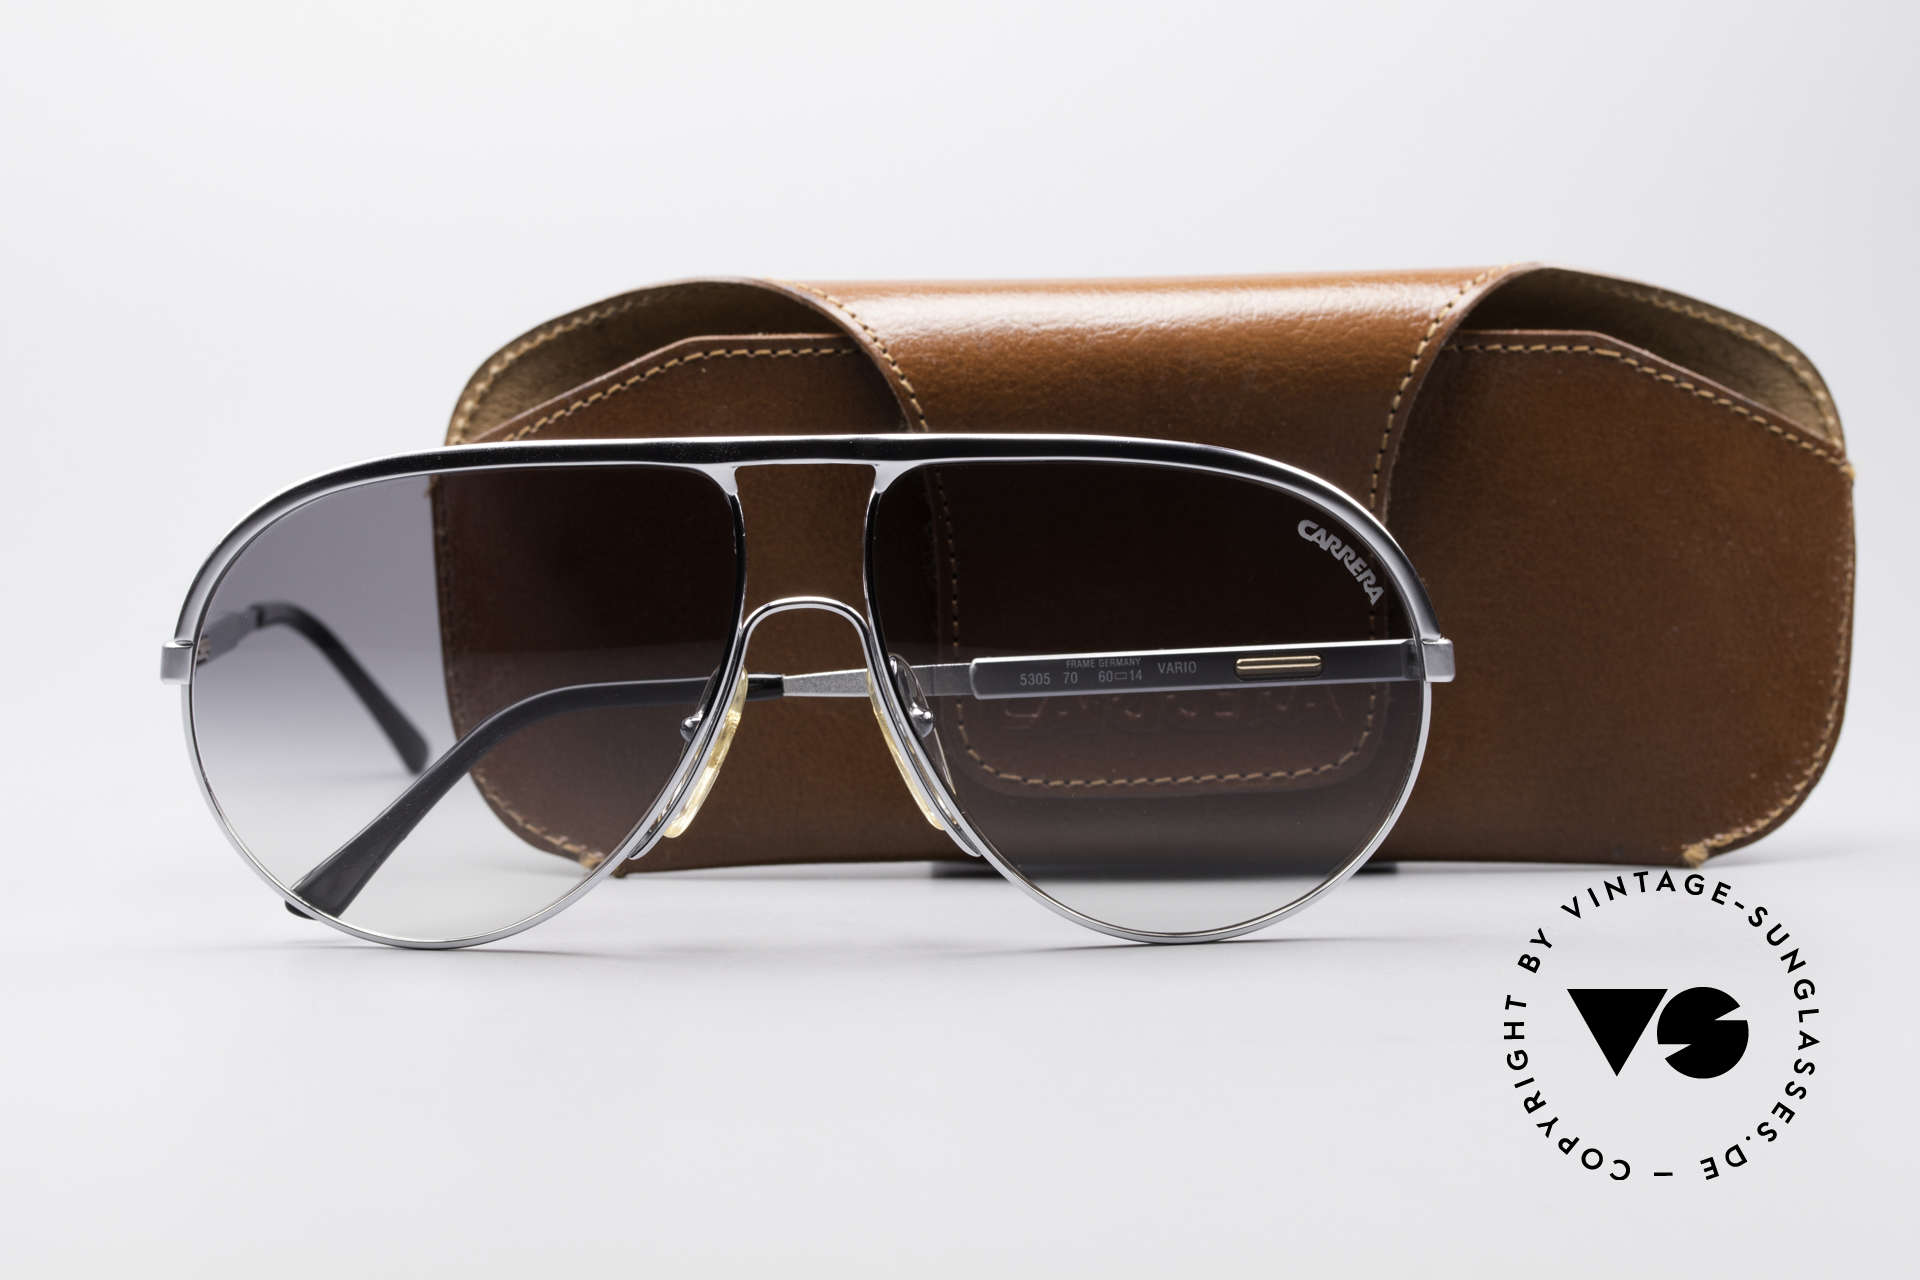 Carrera 5305 Adjustable Sunglasses, unworn, NOS (like all our vintage CARRERA sunglasses), Made for Men